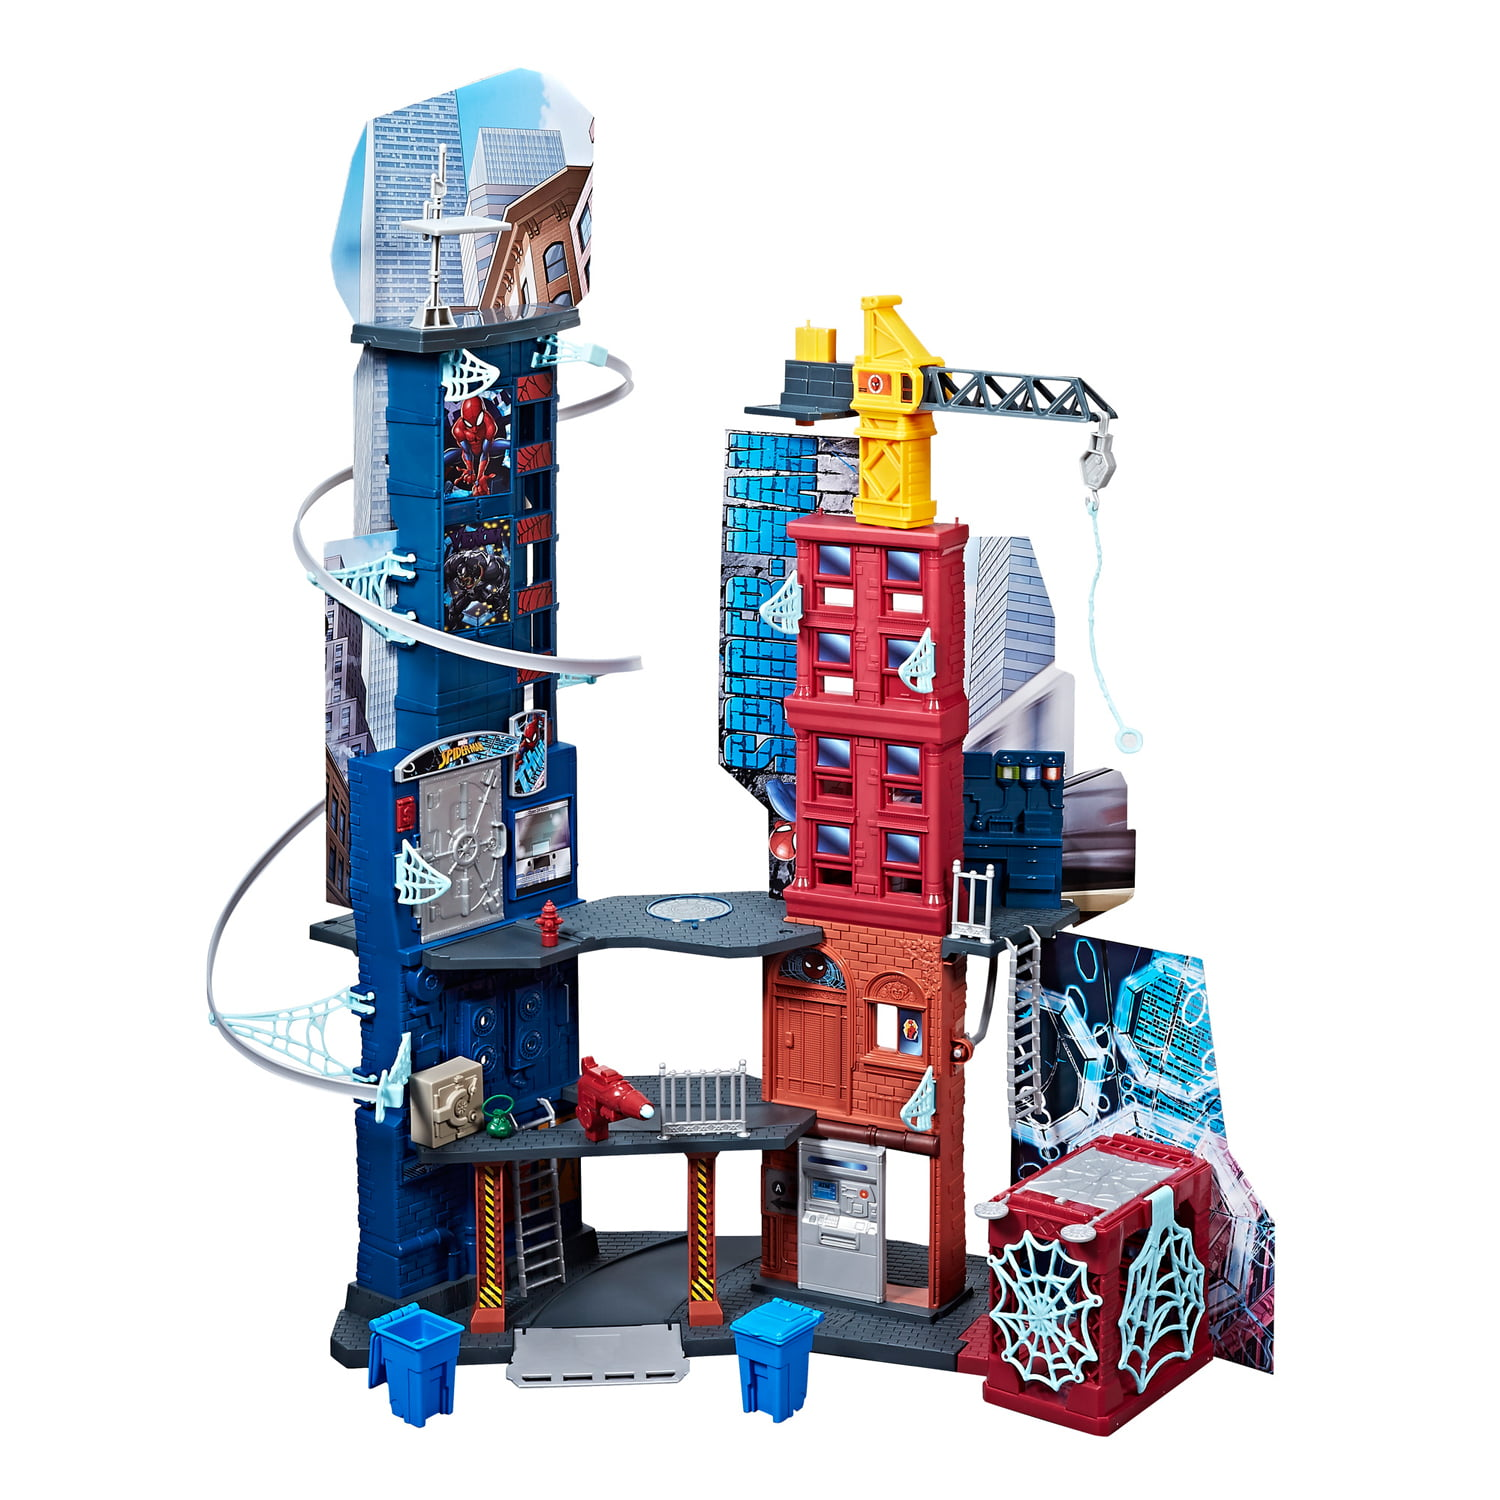 Marvel Spider-Man Mega City Playset by Hasbro Inc